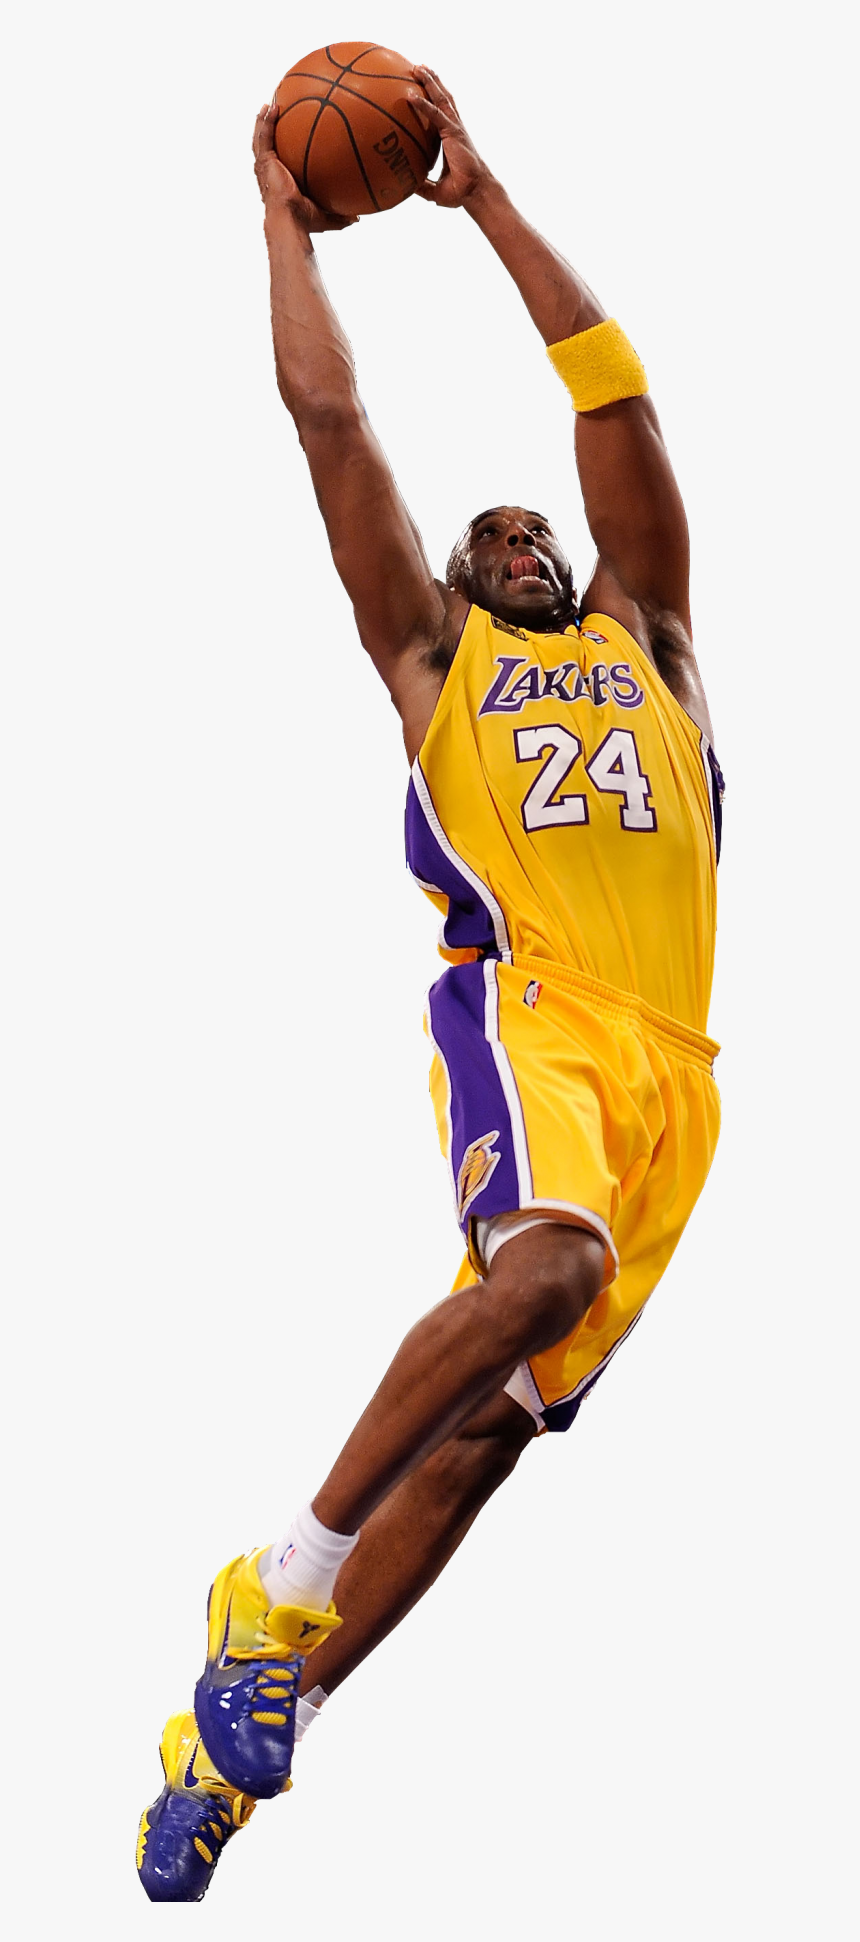 Nike Poster Los Angeles Lakers Just Do It Kobe Bryant Png